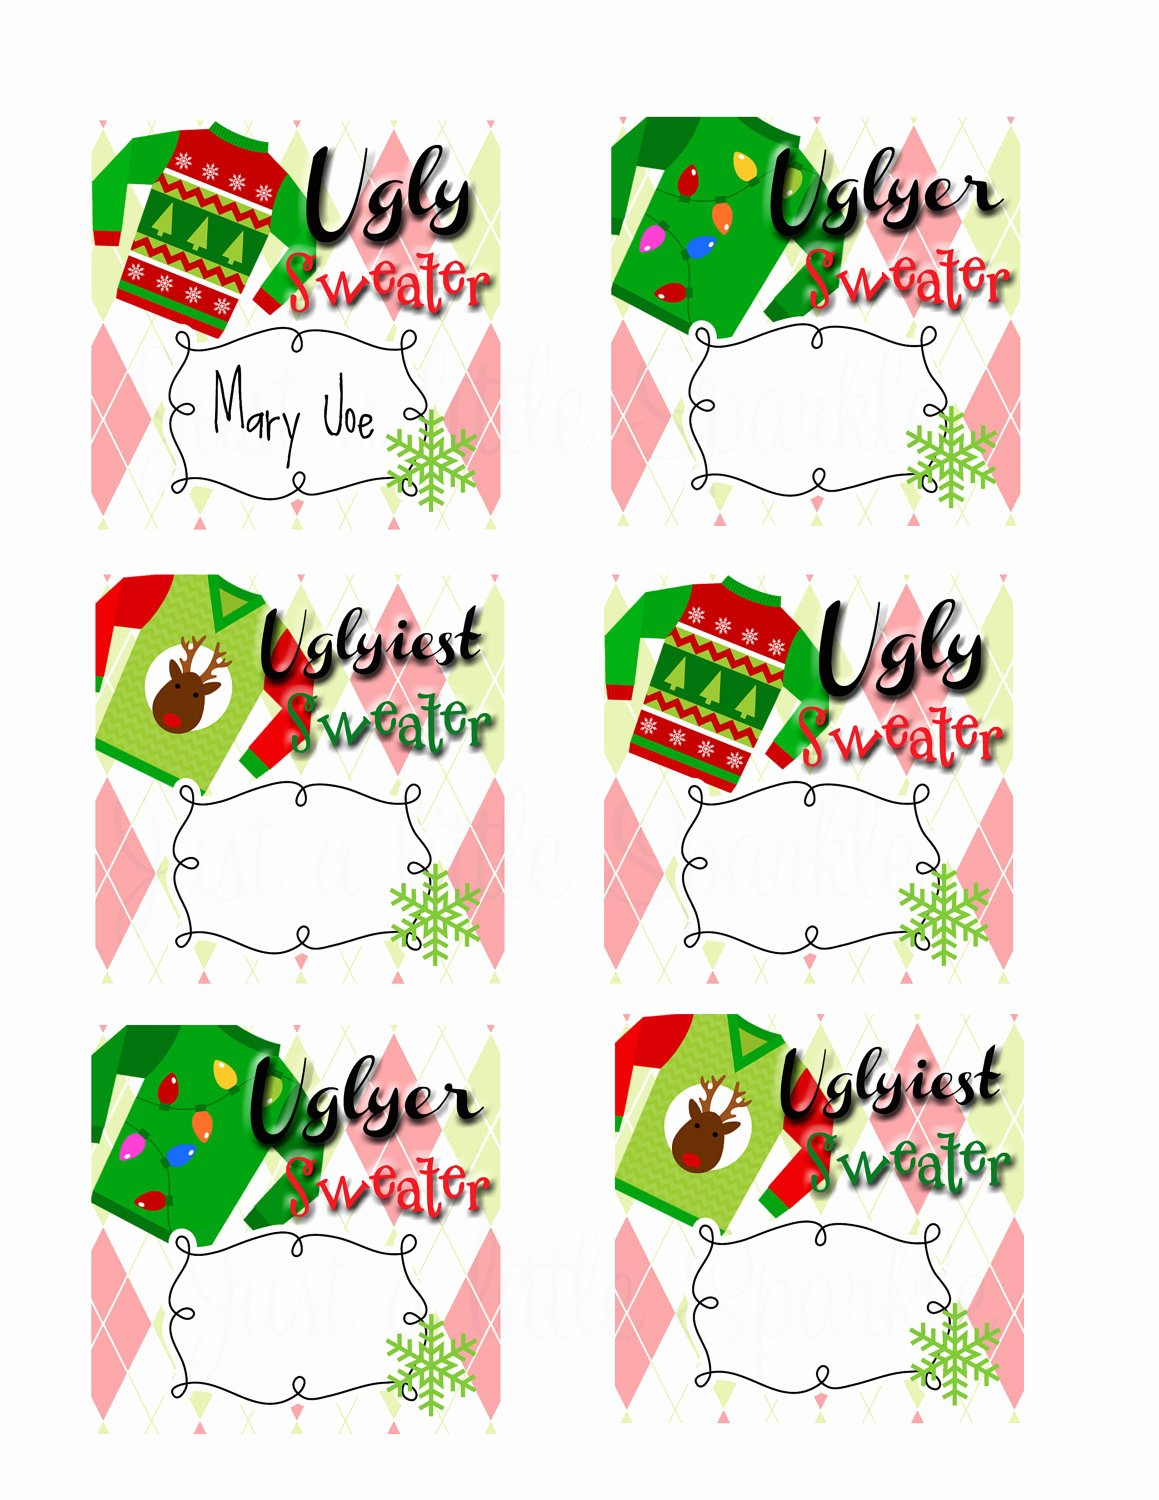 29 images of ugly sweater voting ballot template 3559